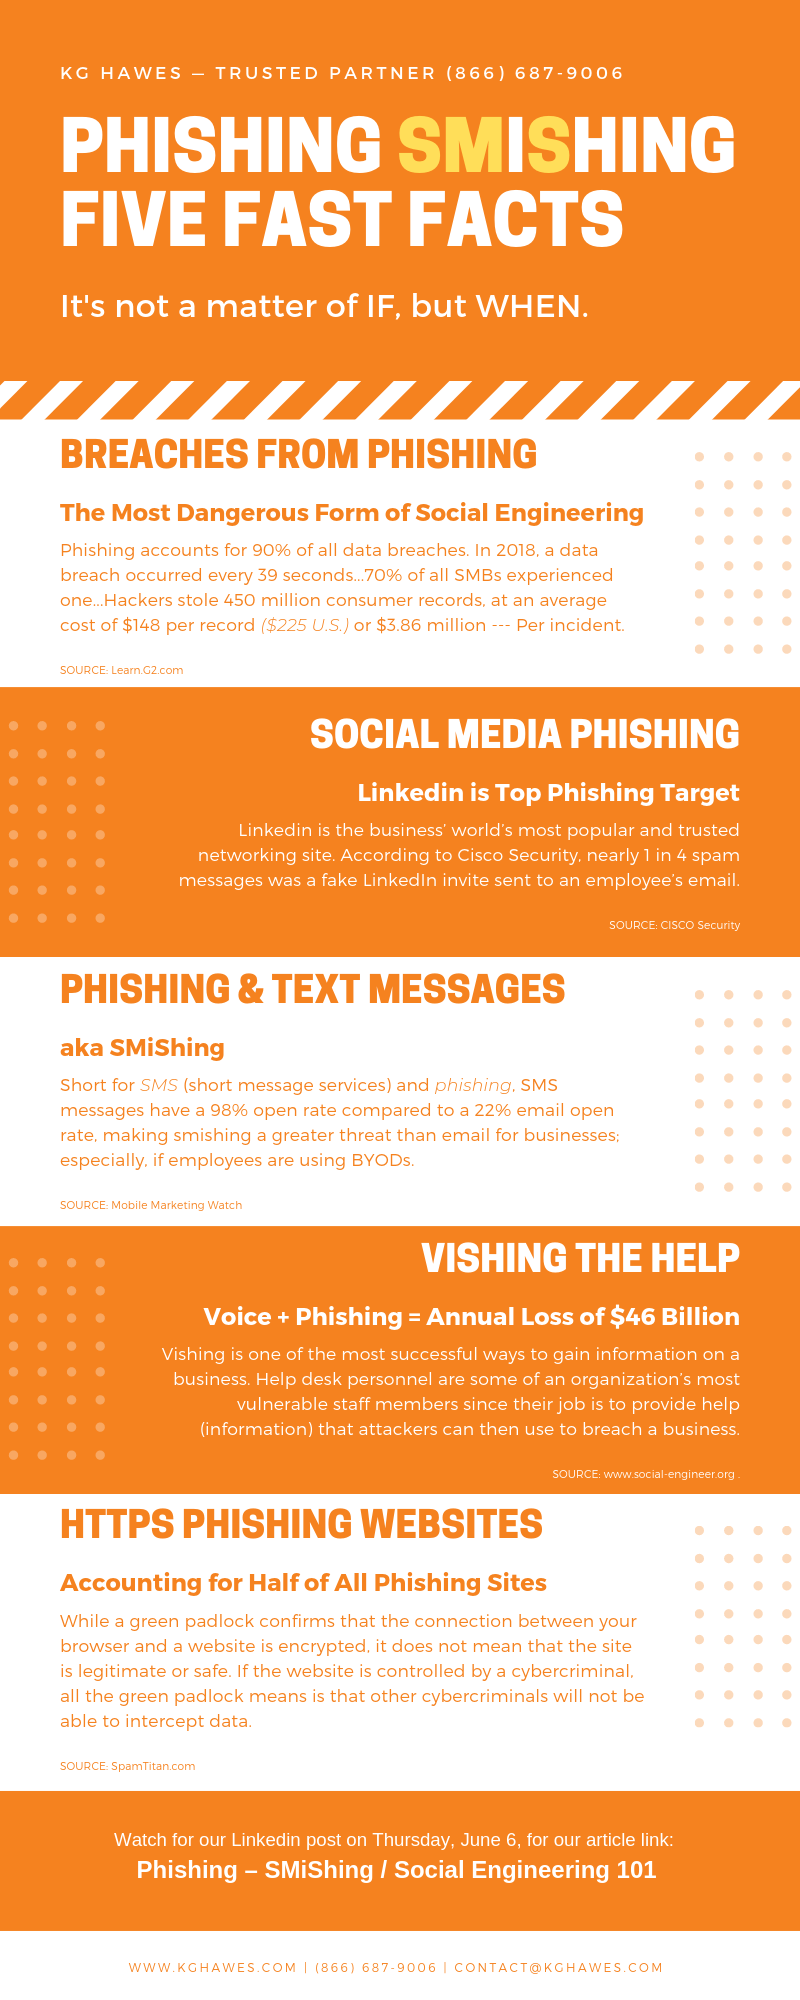 Phishing SMiShing: Five Fast Facts -